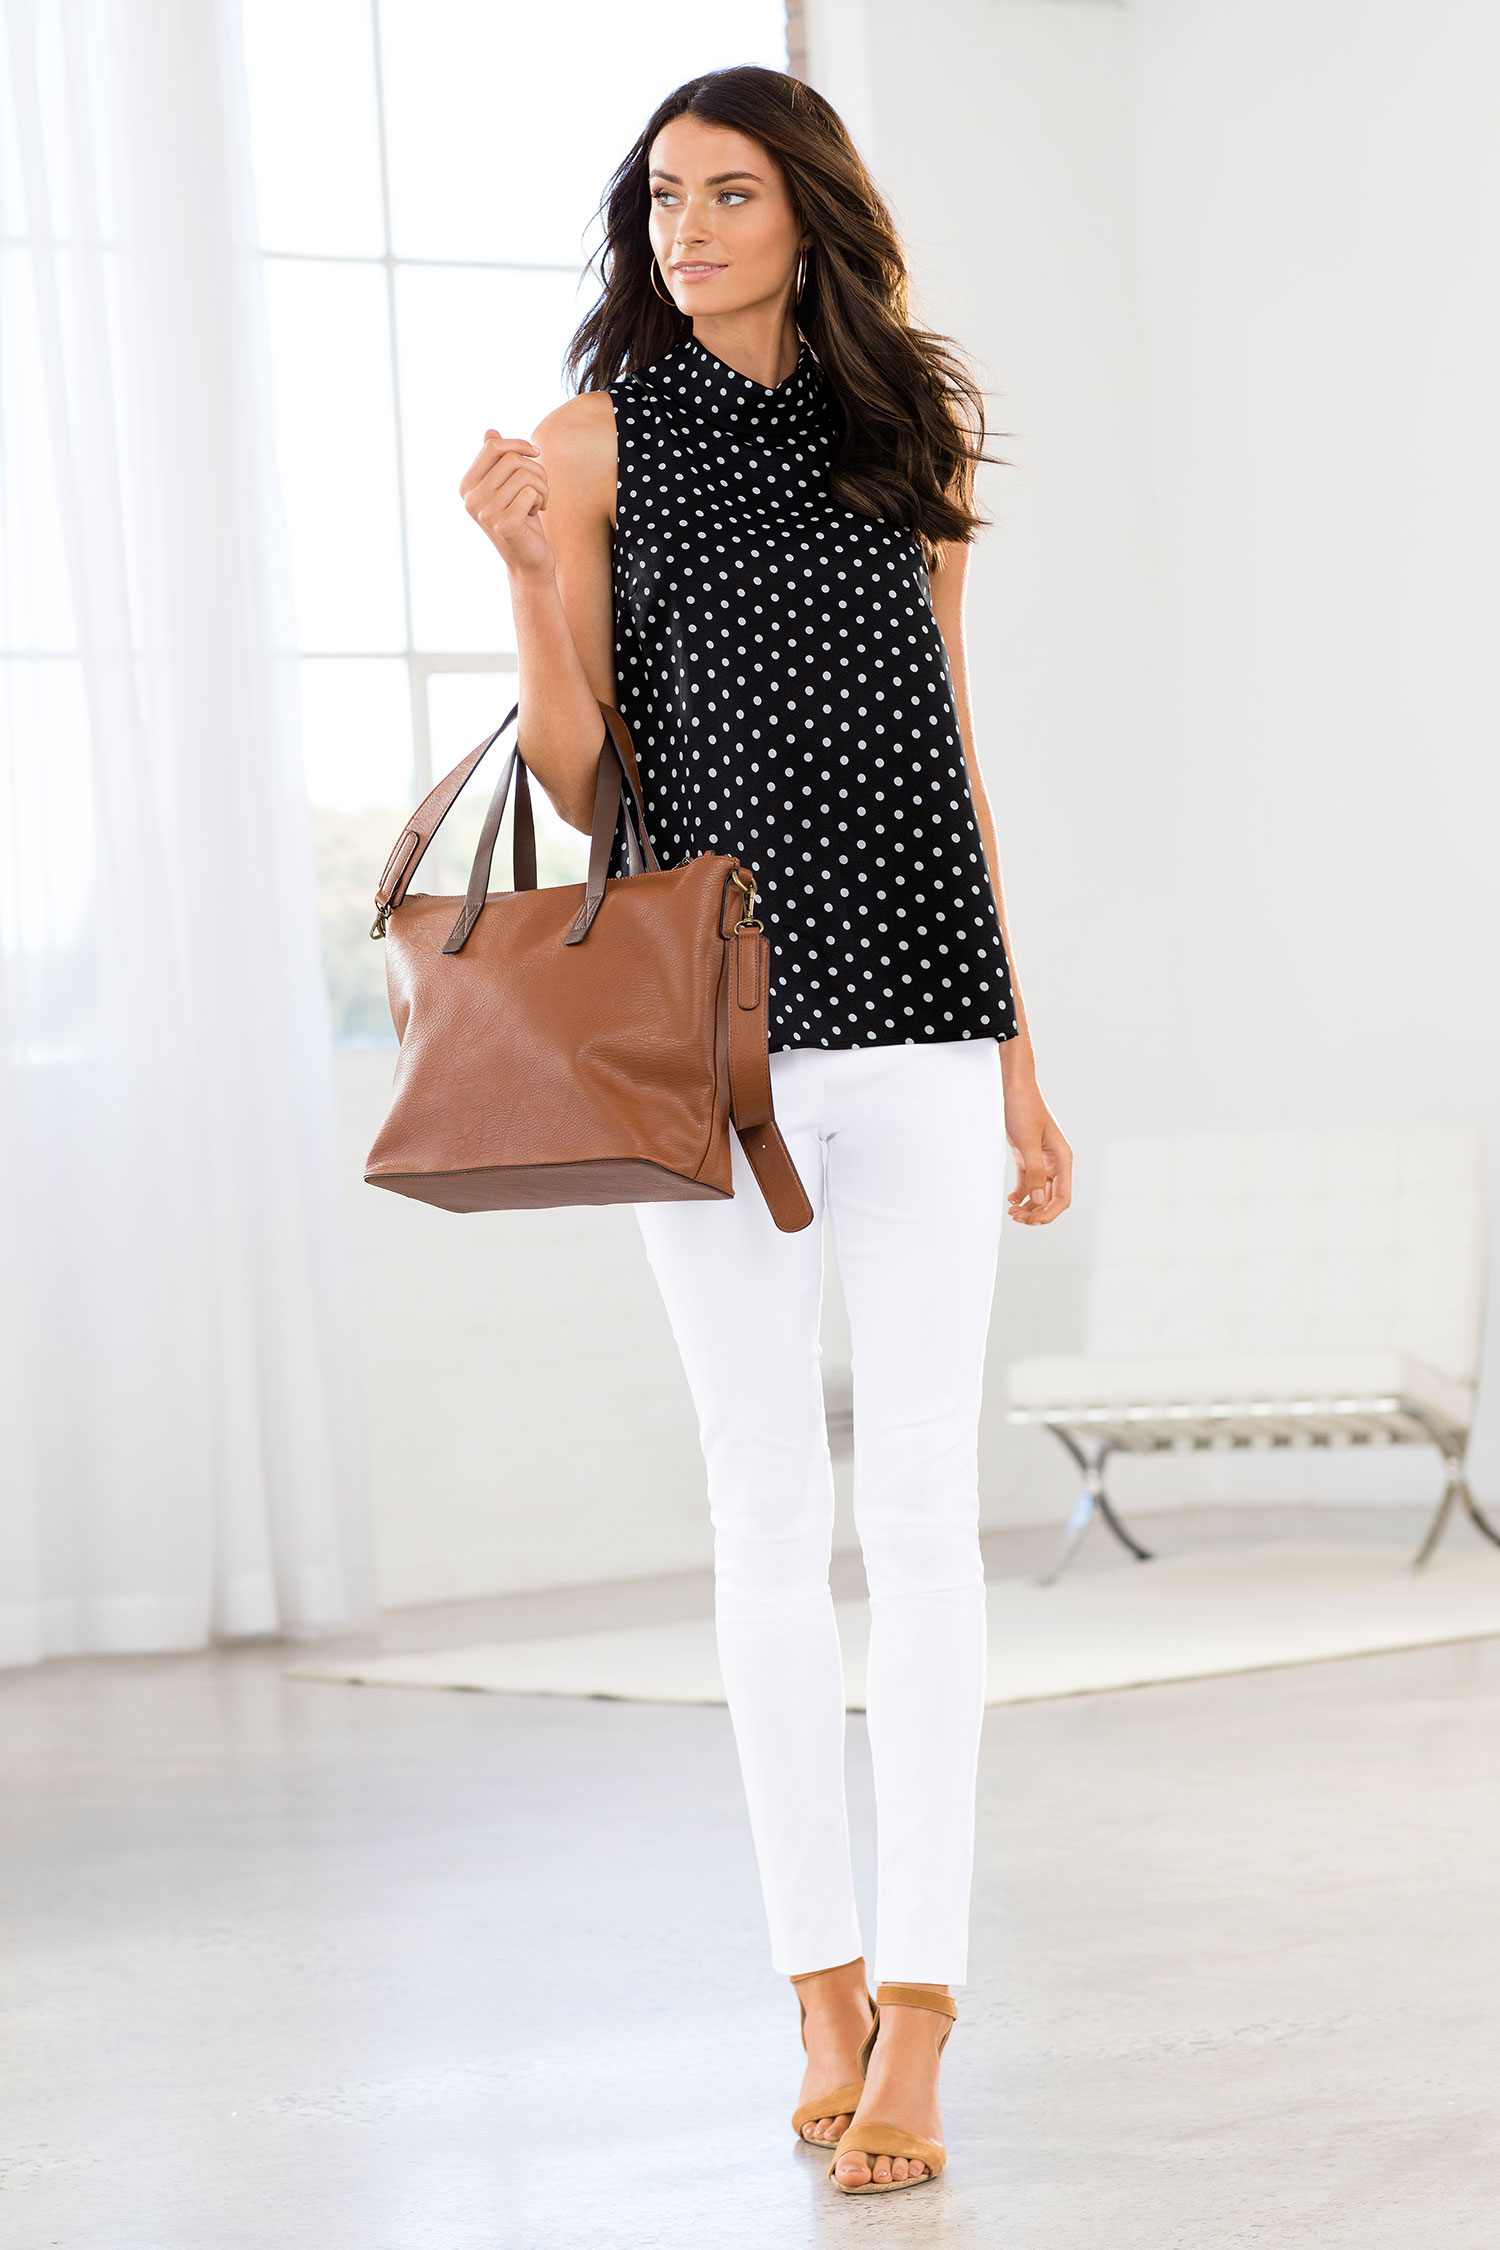 Classy and Chic